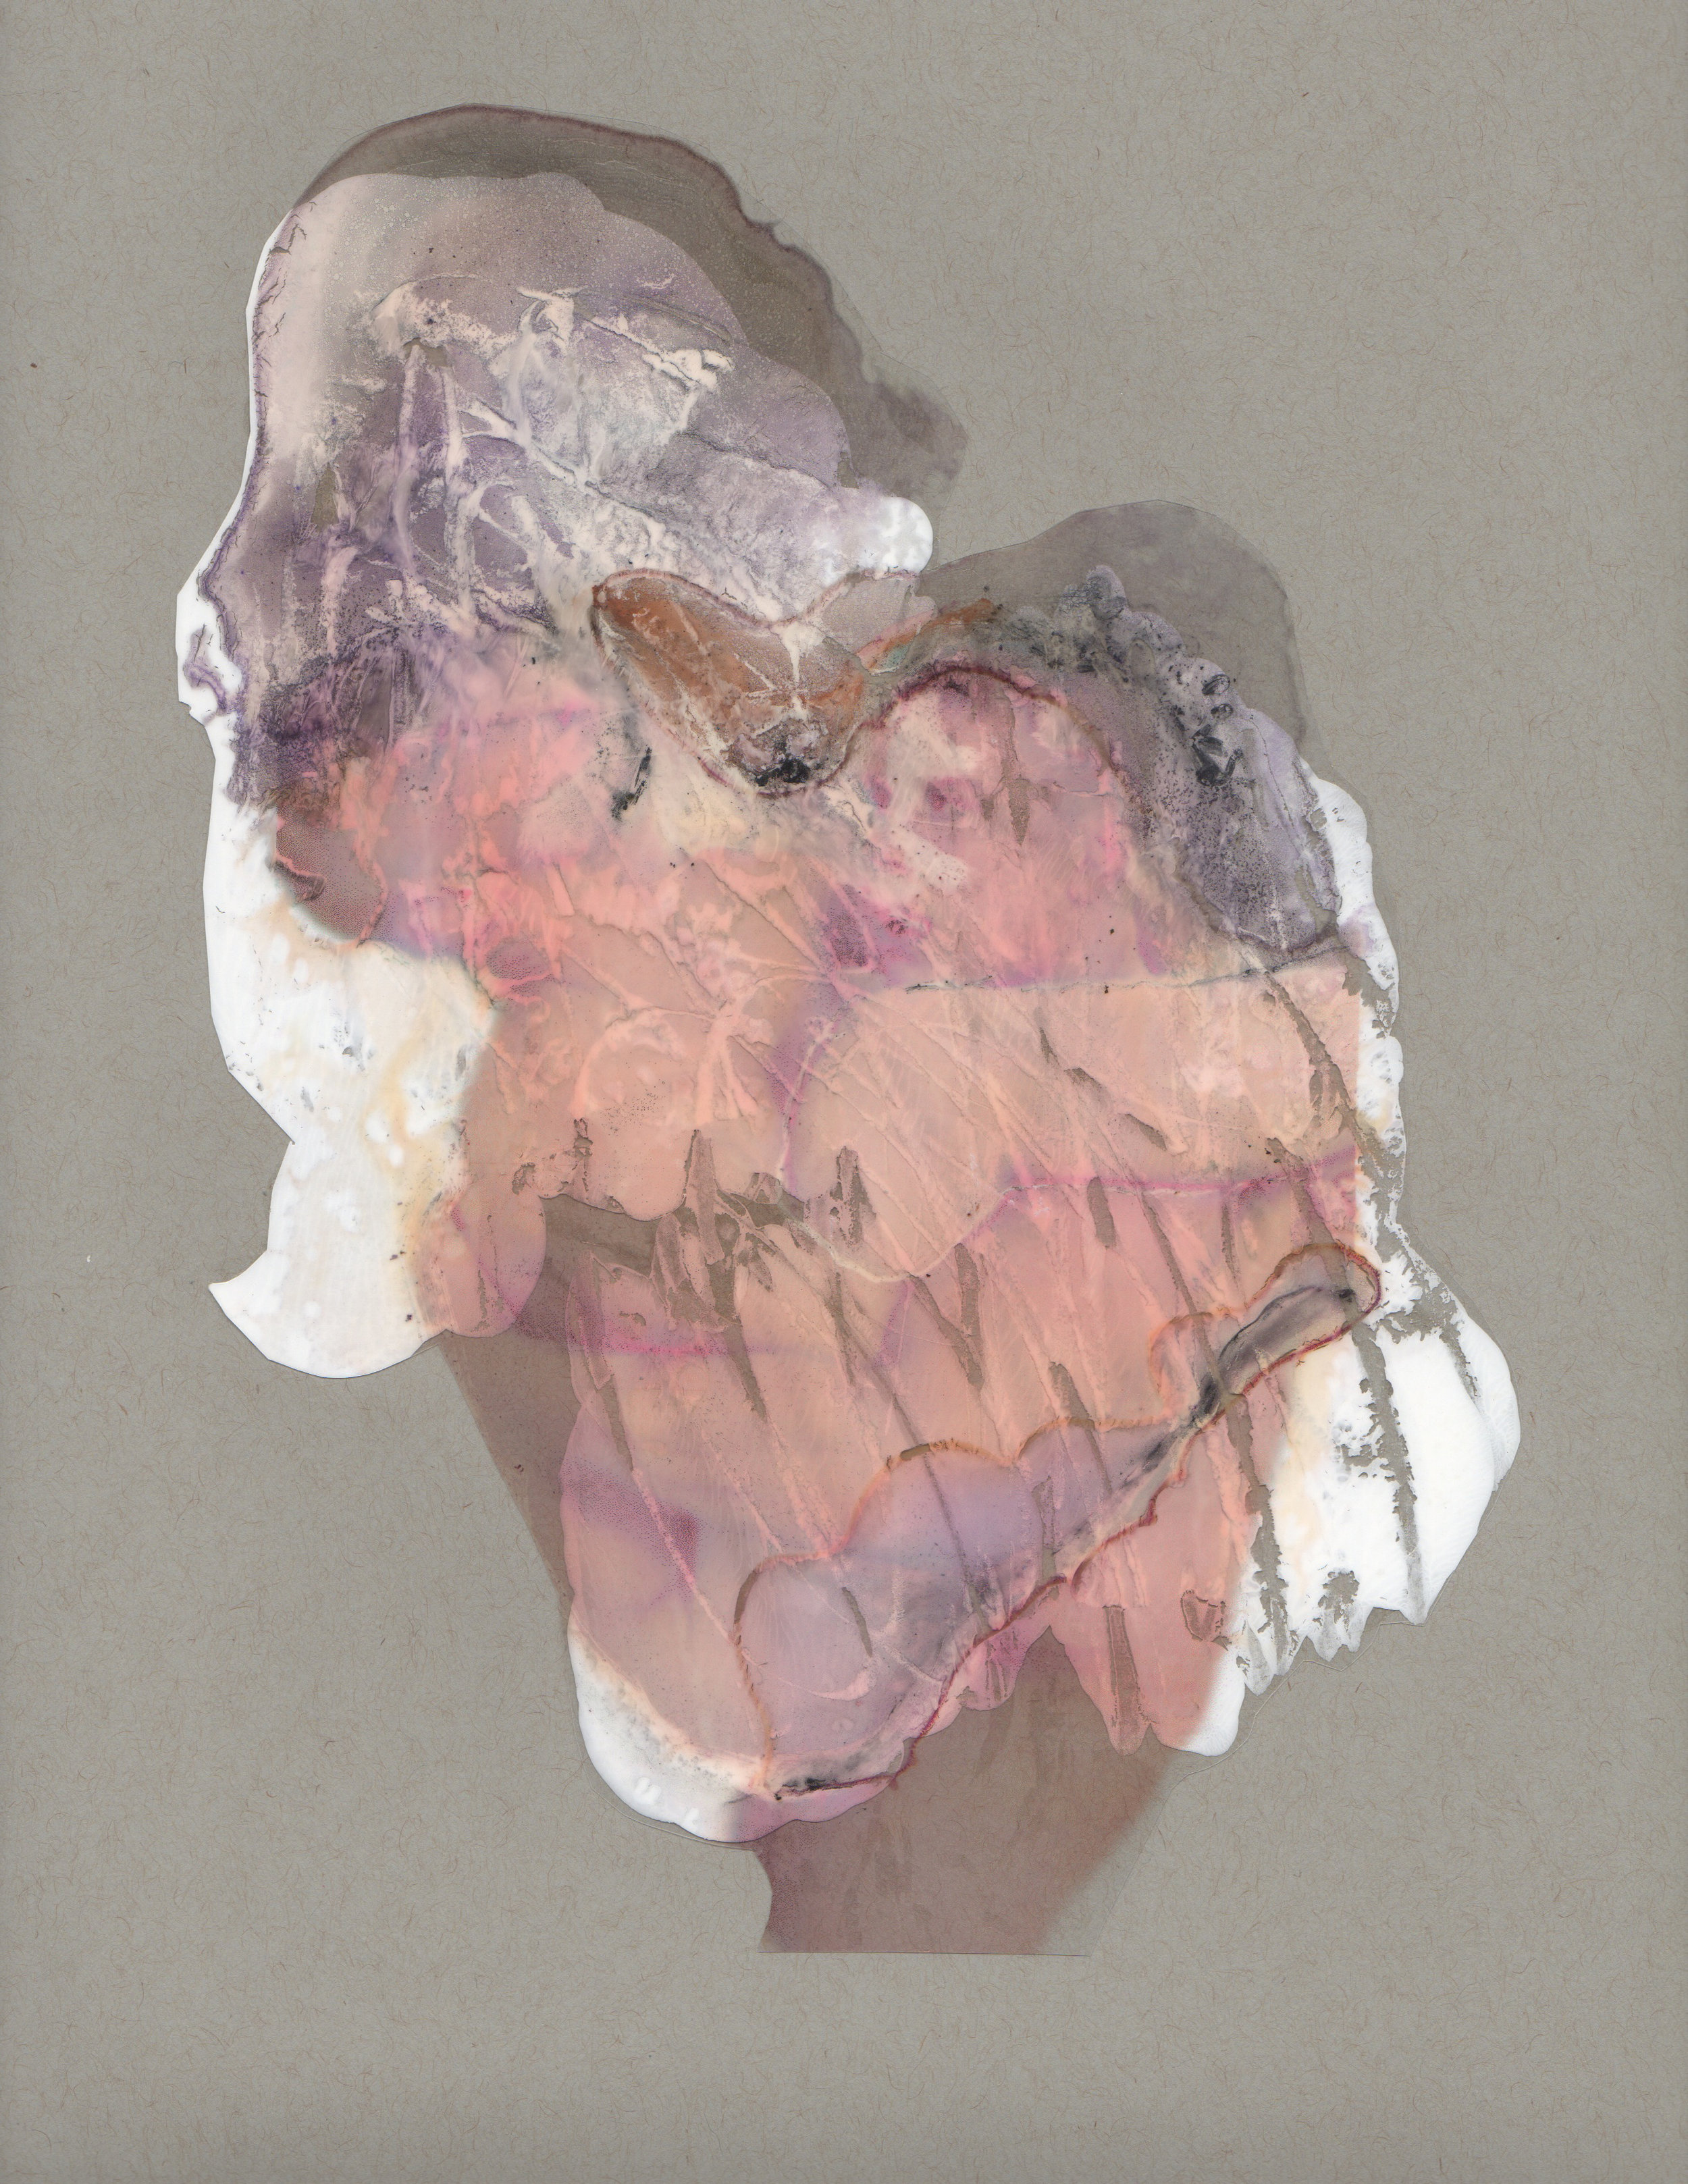 Energy and Matter, 2014, paint transparency archival ink and paper, 9x12 inches